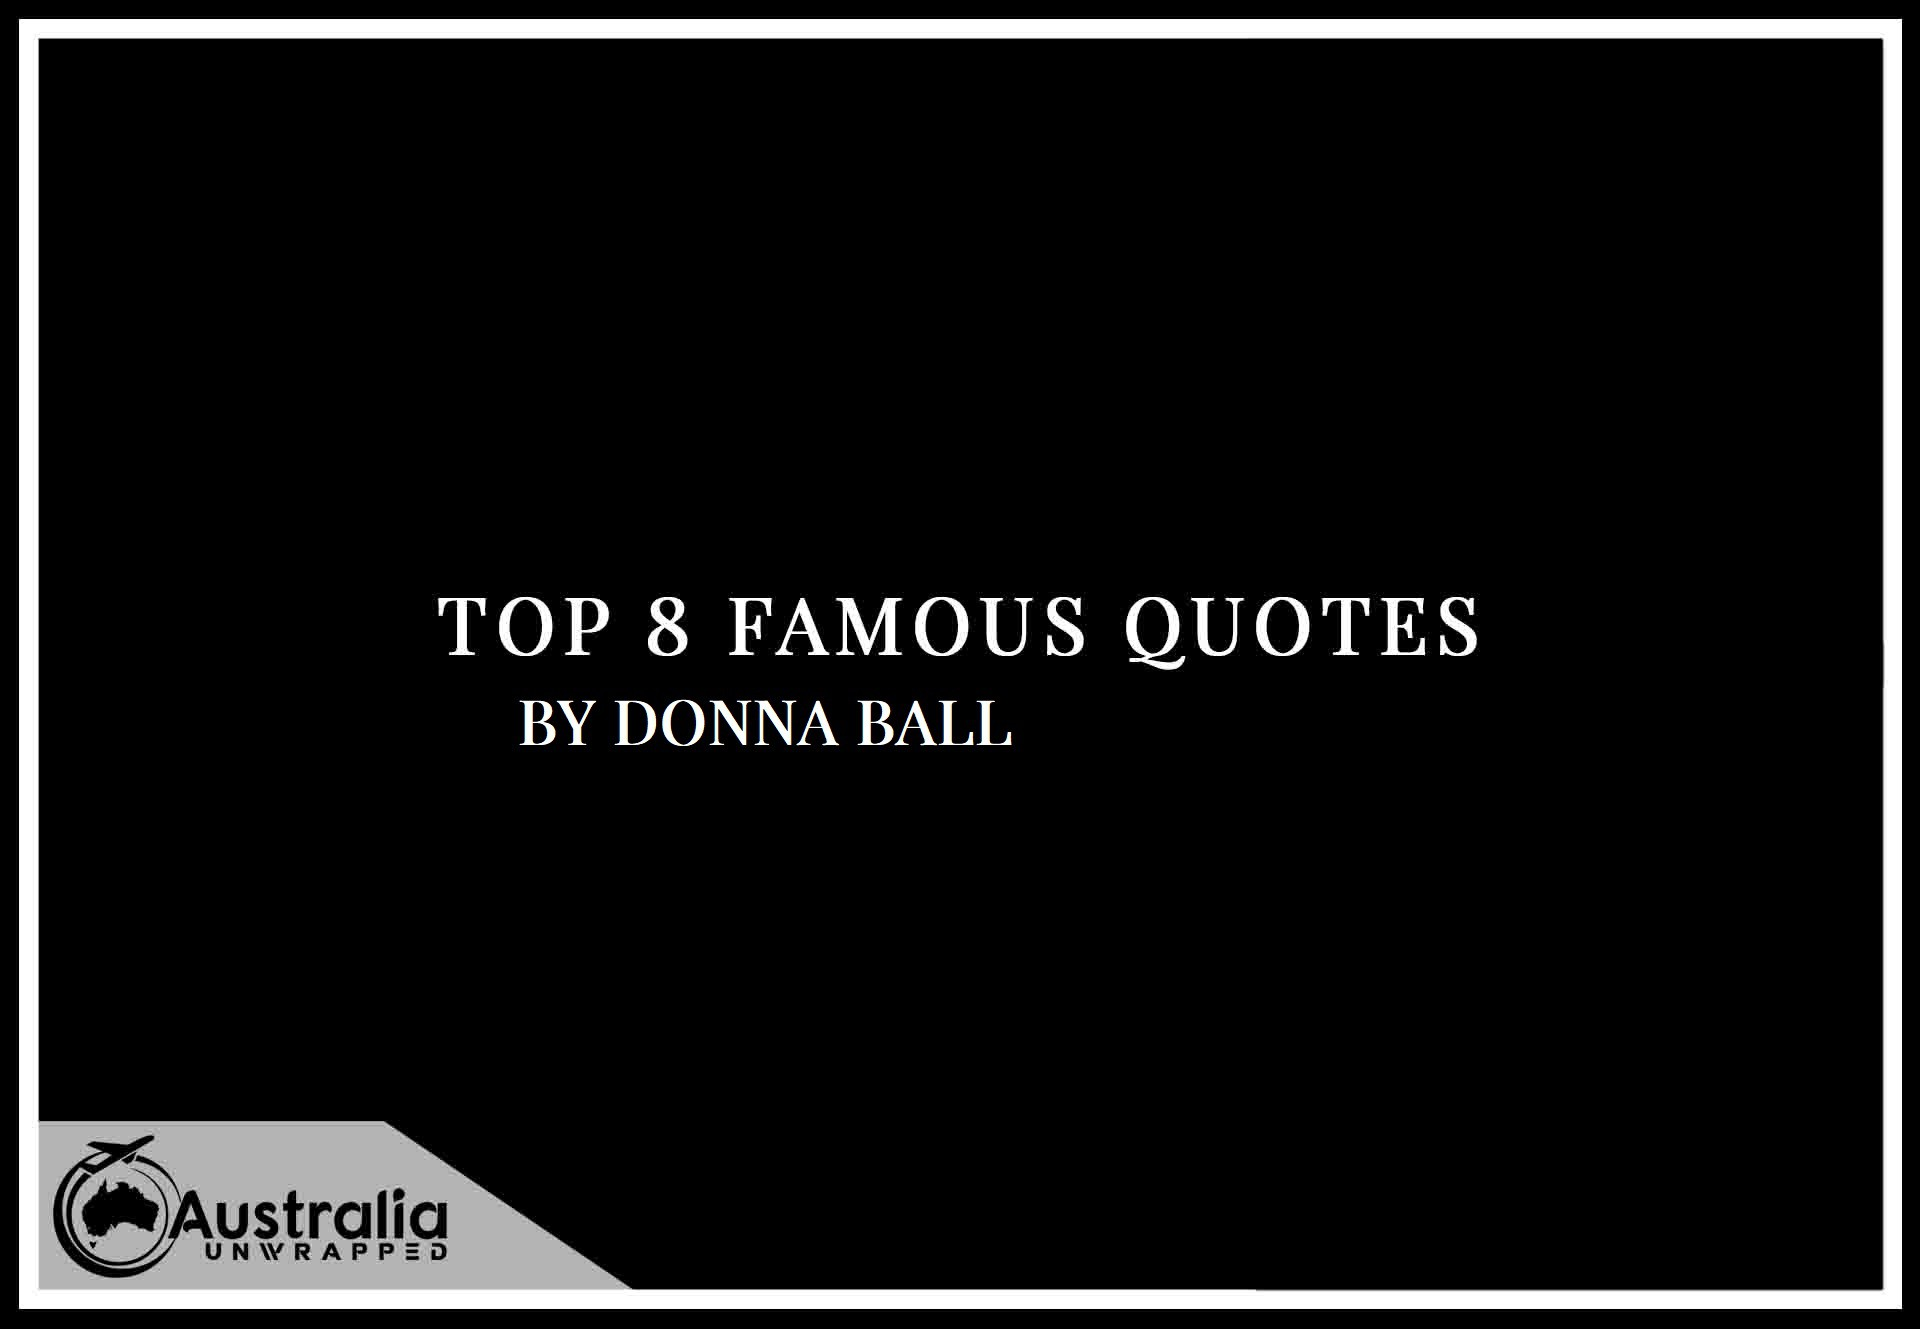 Top 8 Famous Quotes by Author Donna Ball